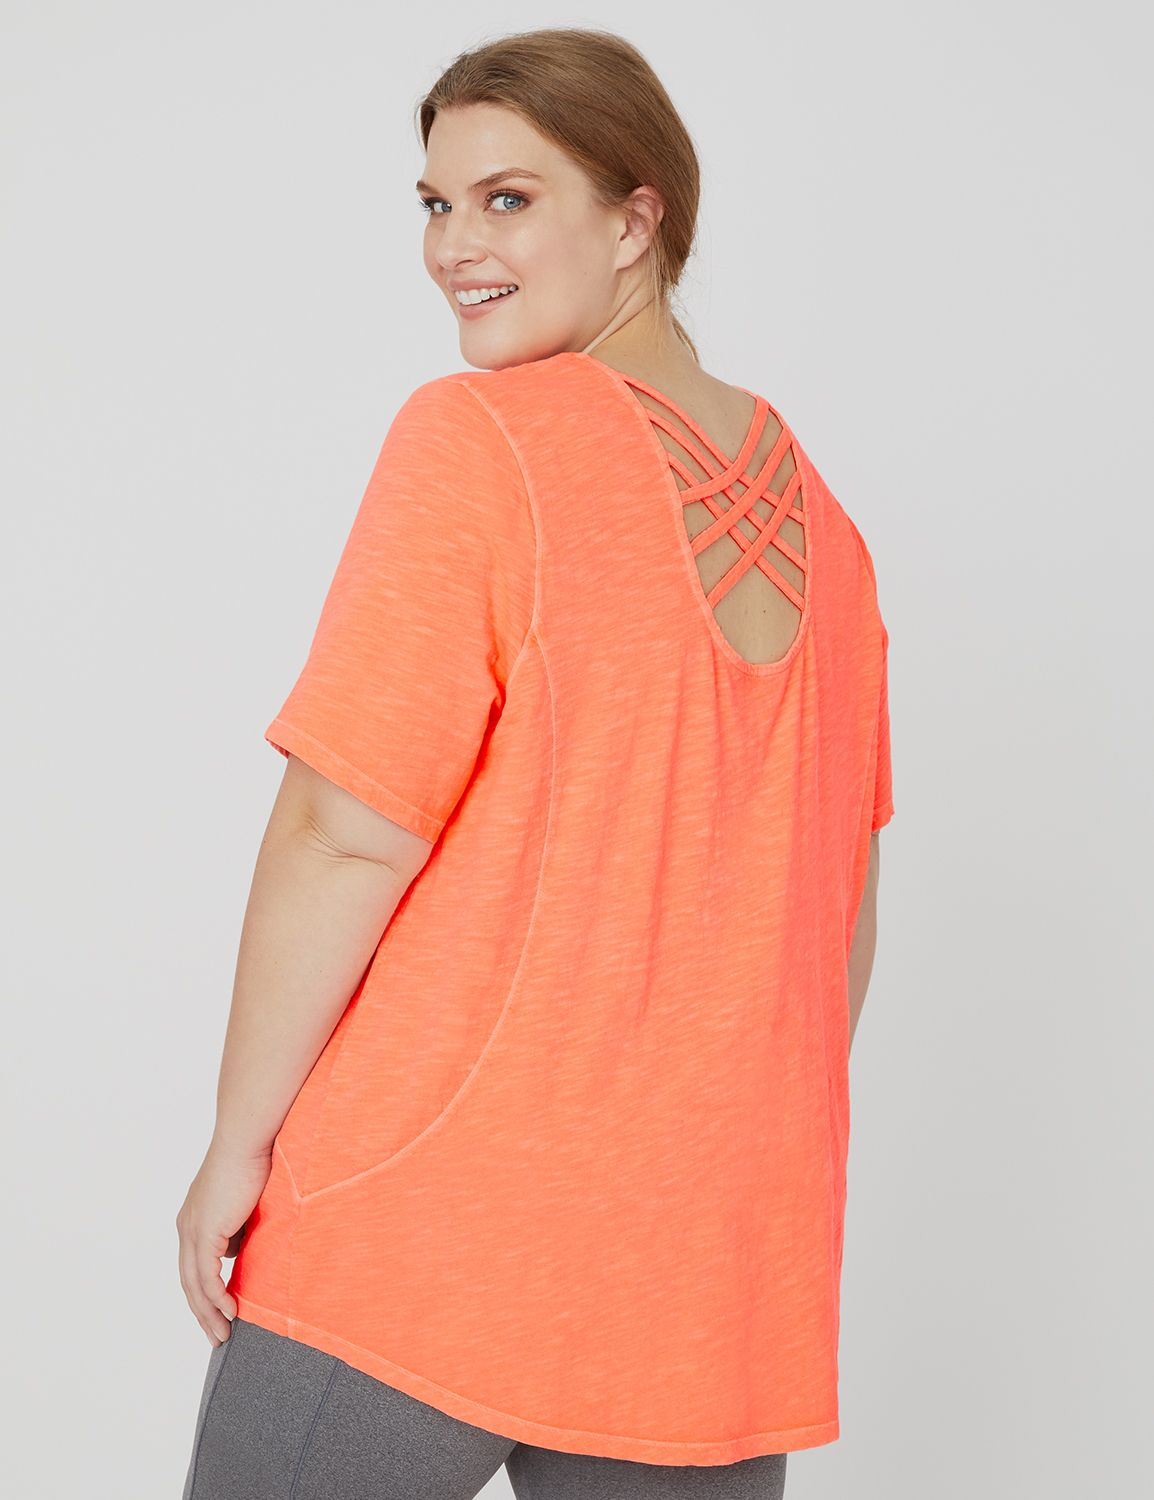 Short-Sleeve Crisscross Active Tee 1088551 SS Criss-Cross Back Top MP-300097720